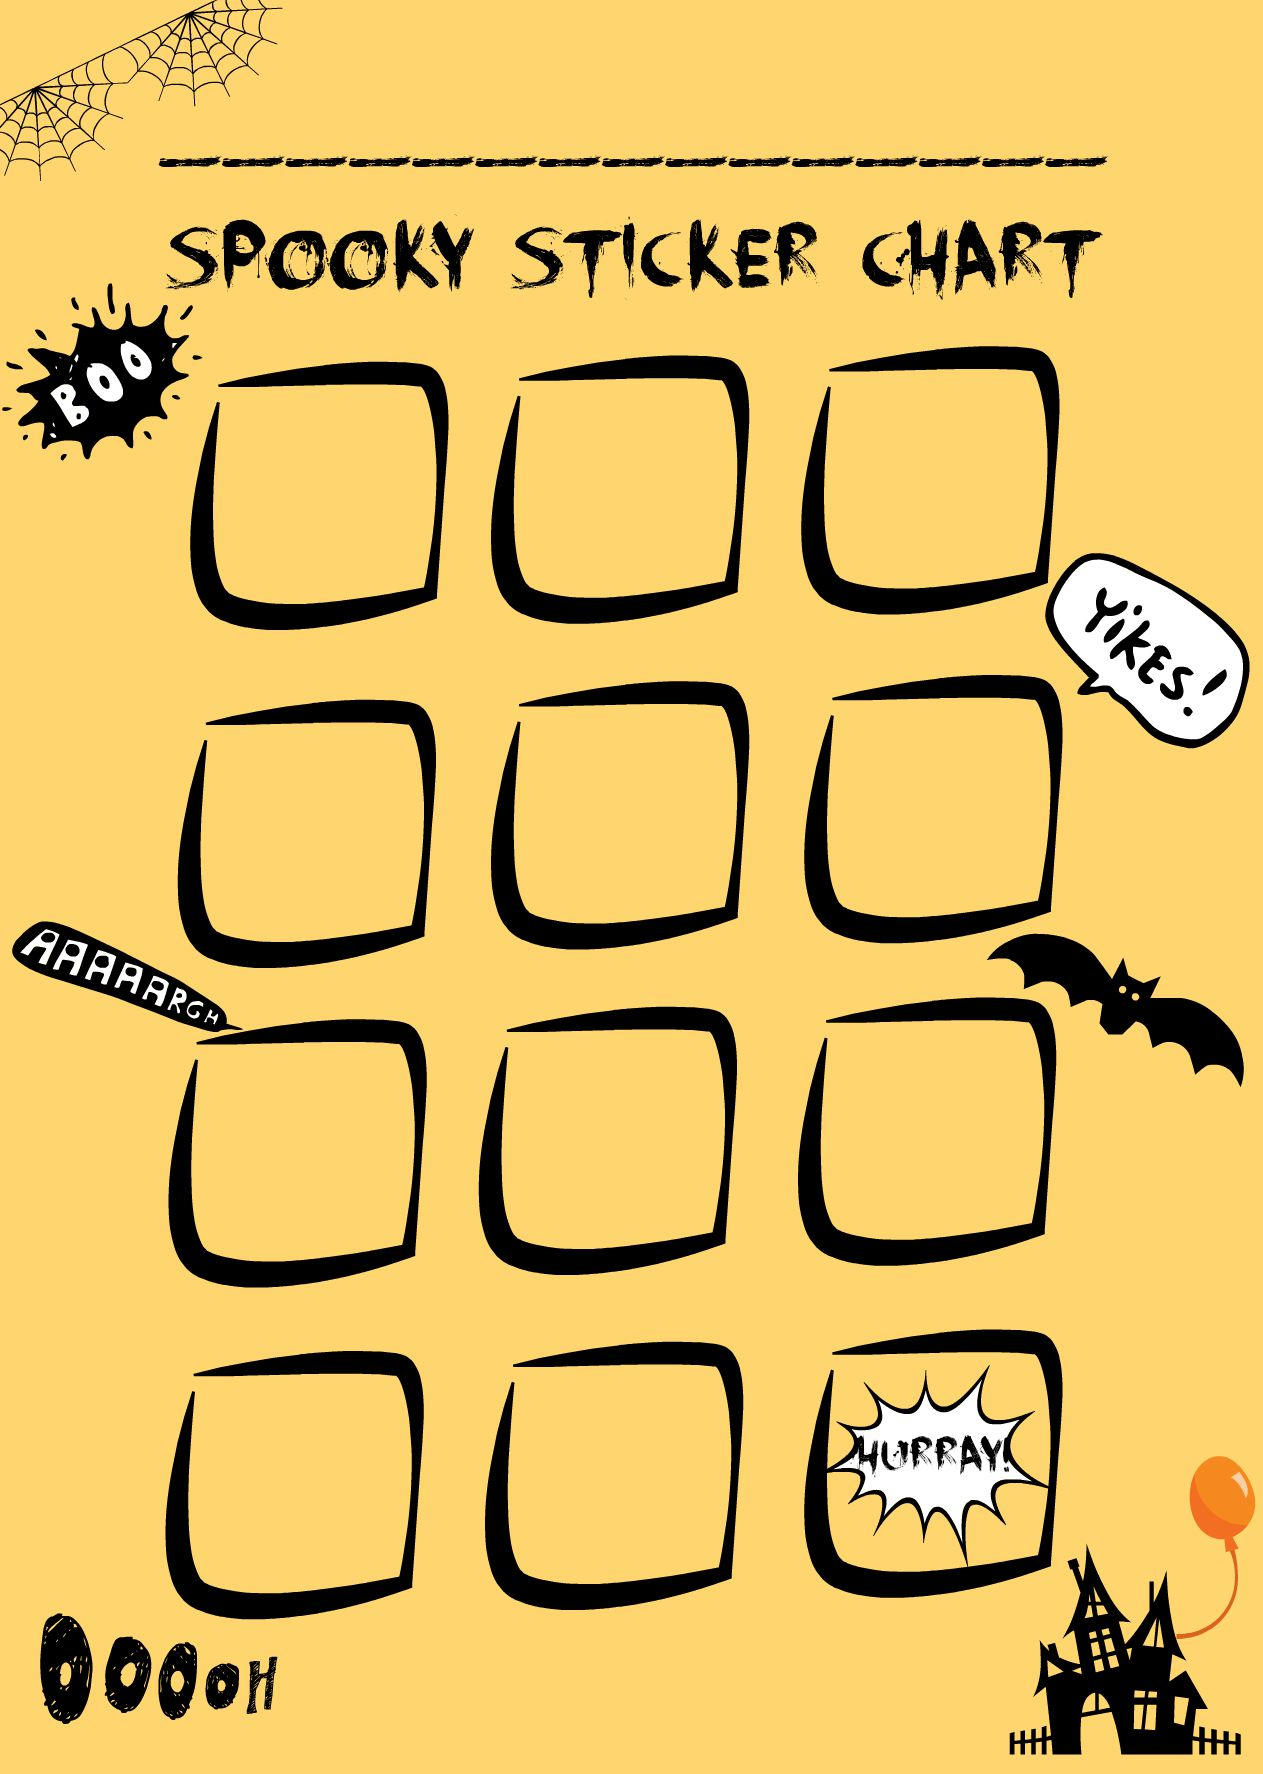 Halloween sticker chart - free printable sticker chart / reward chart